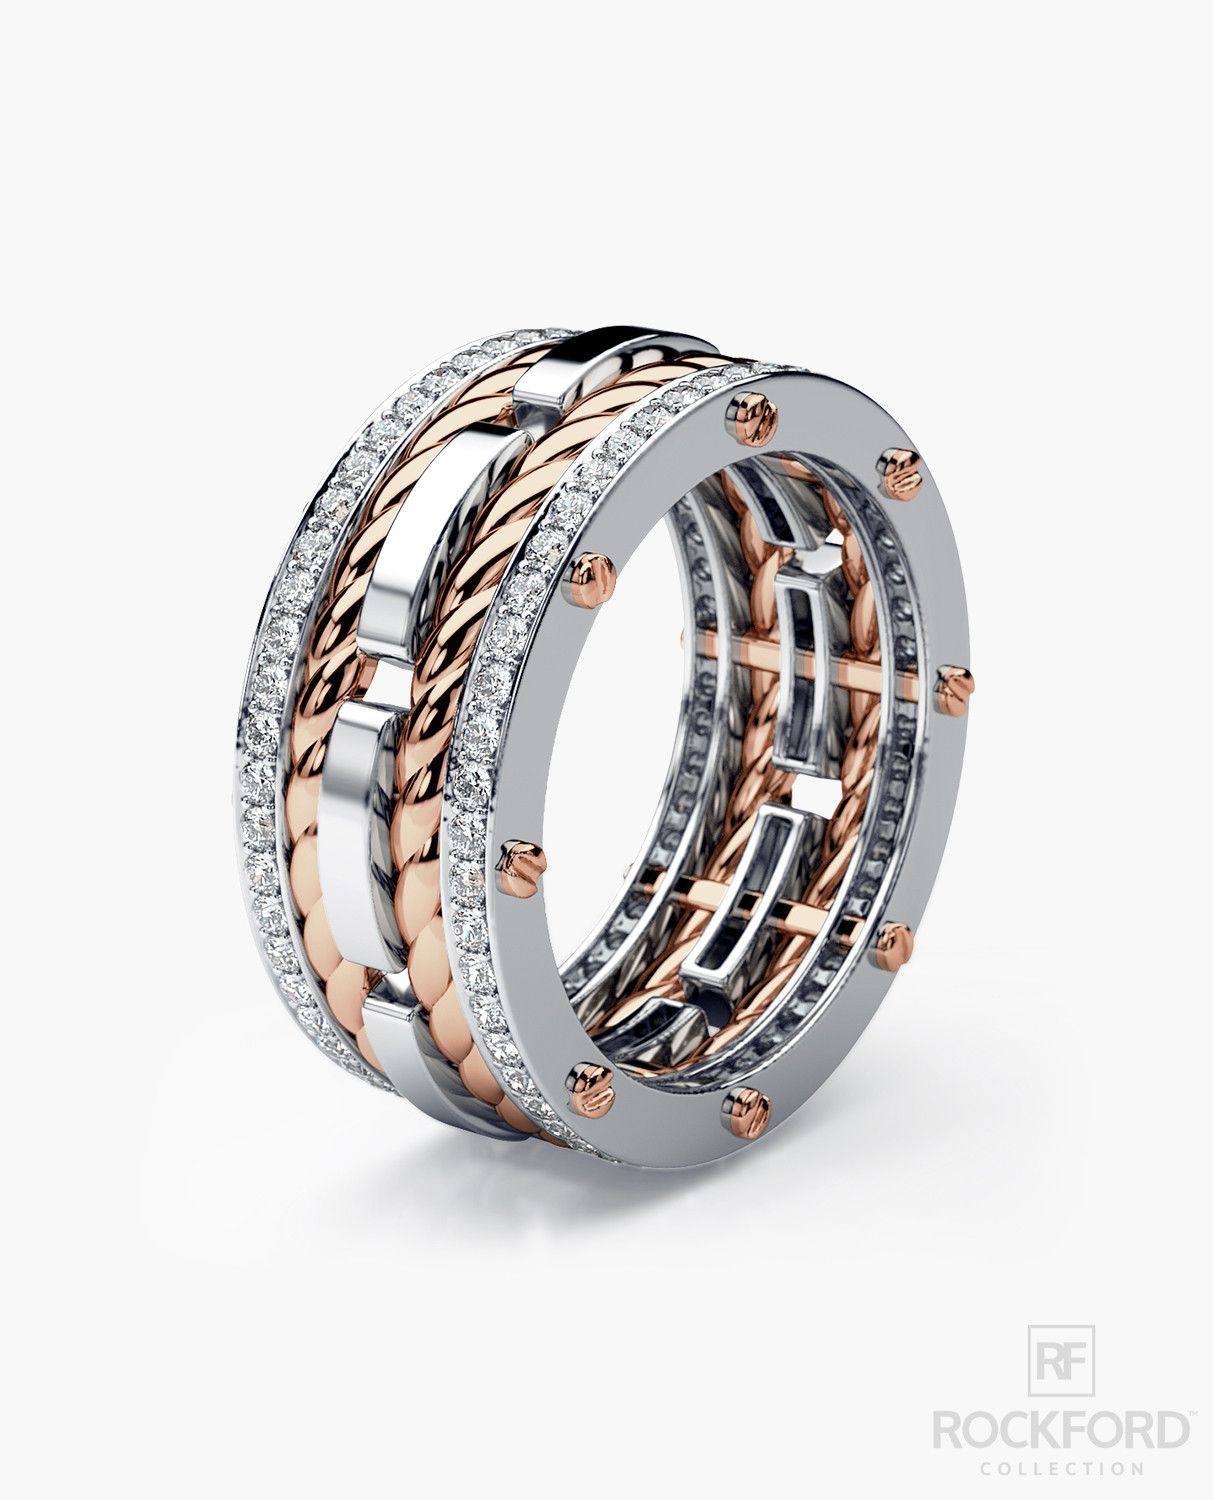 25+ Two tone gold mens wedding band ideas in 2021